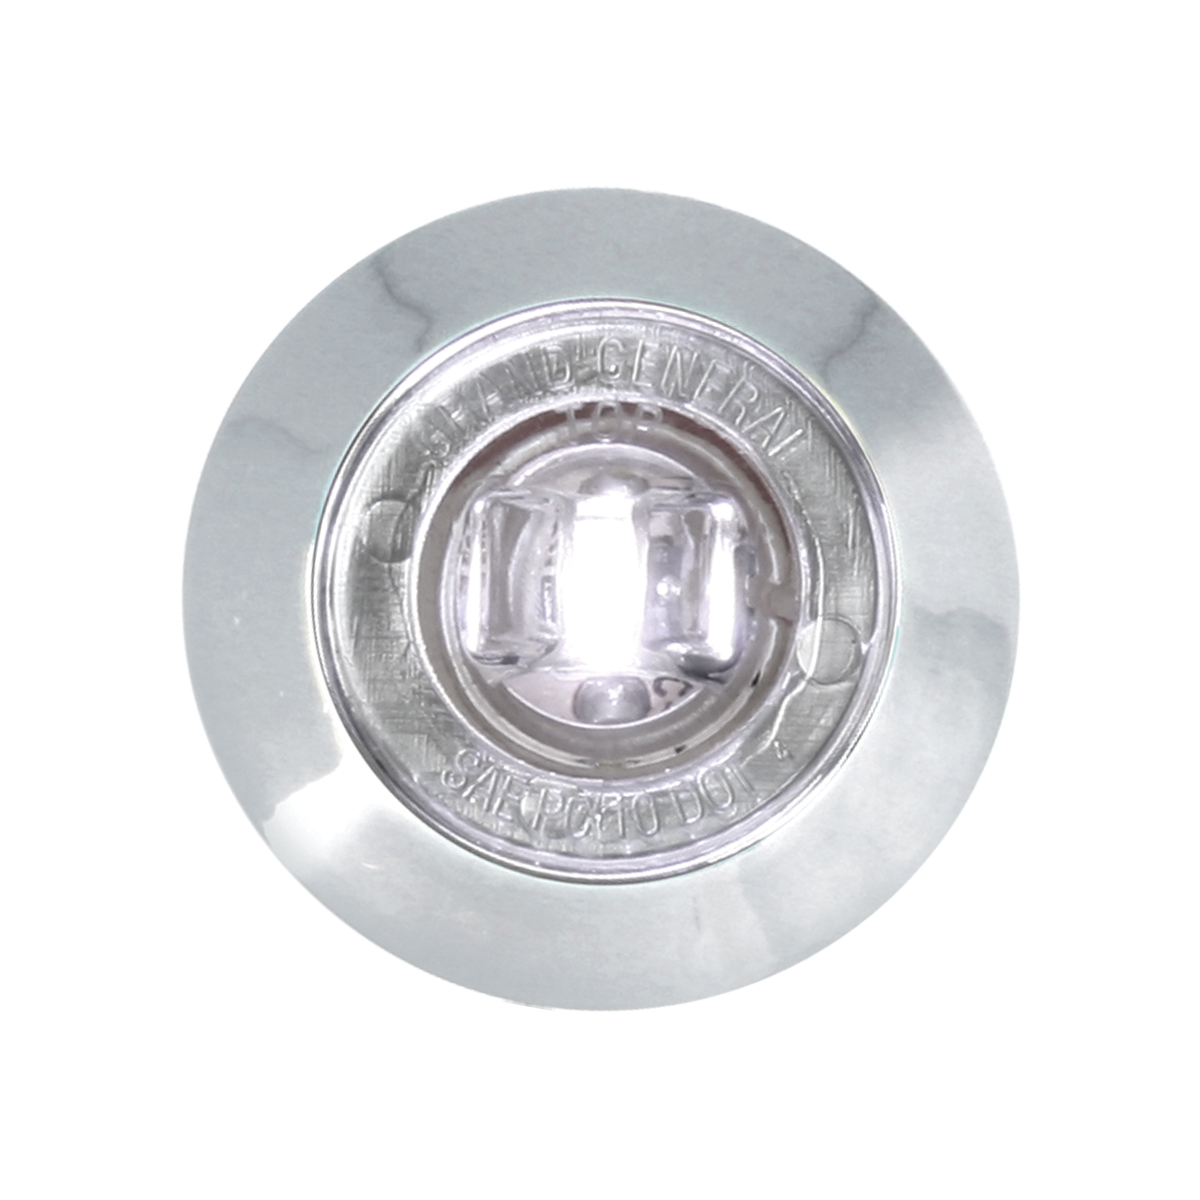 "87064 White 1"" Dia. Mini Push/Screw-in Wide Angle LED Marker Light w/ Chrome Bezel"